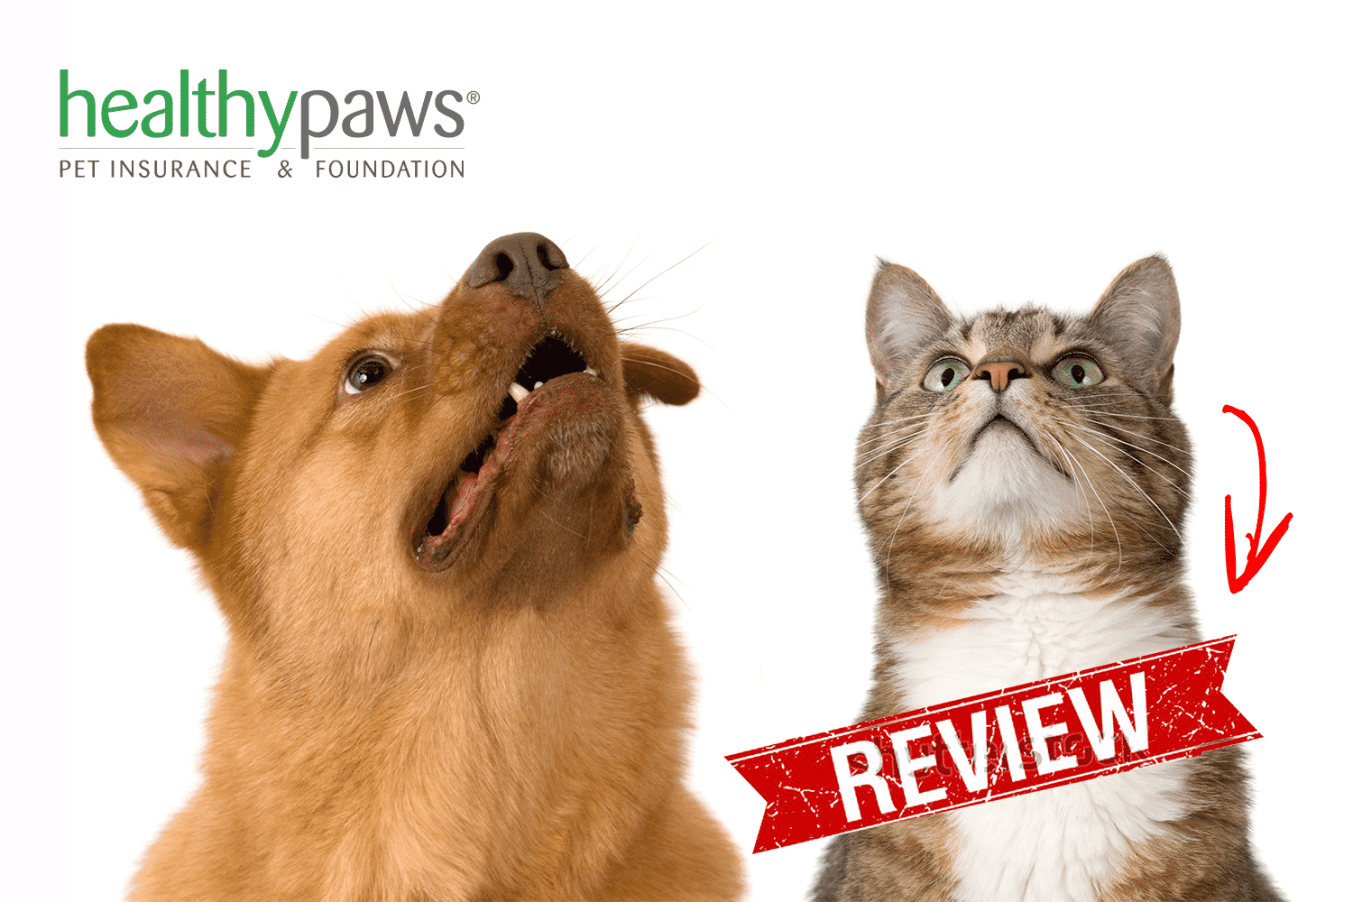 healthy paws reviews